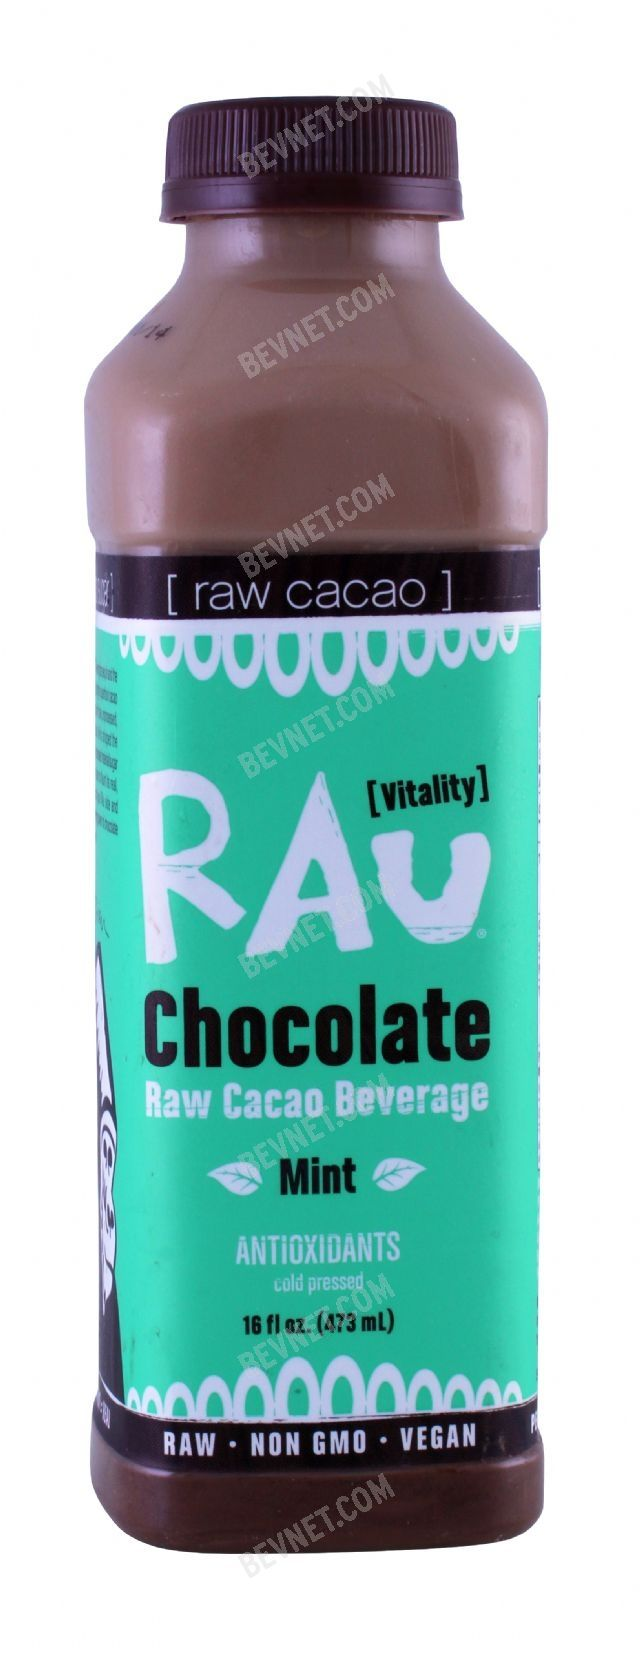 Rau Chocolate: